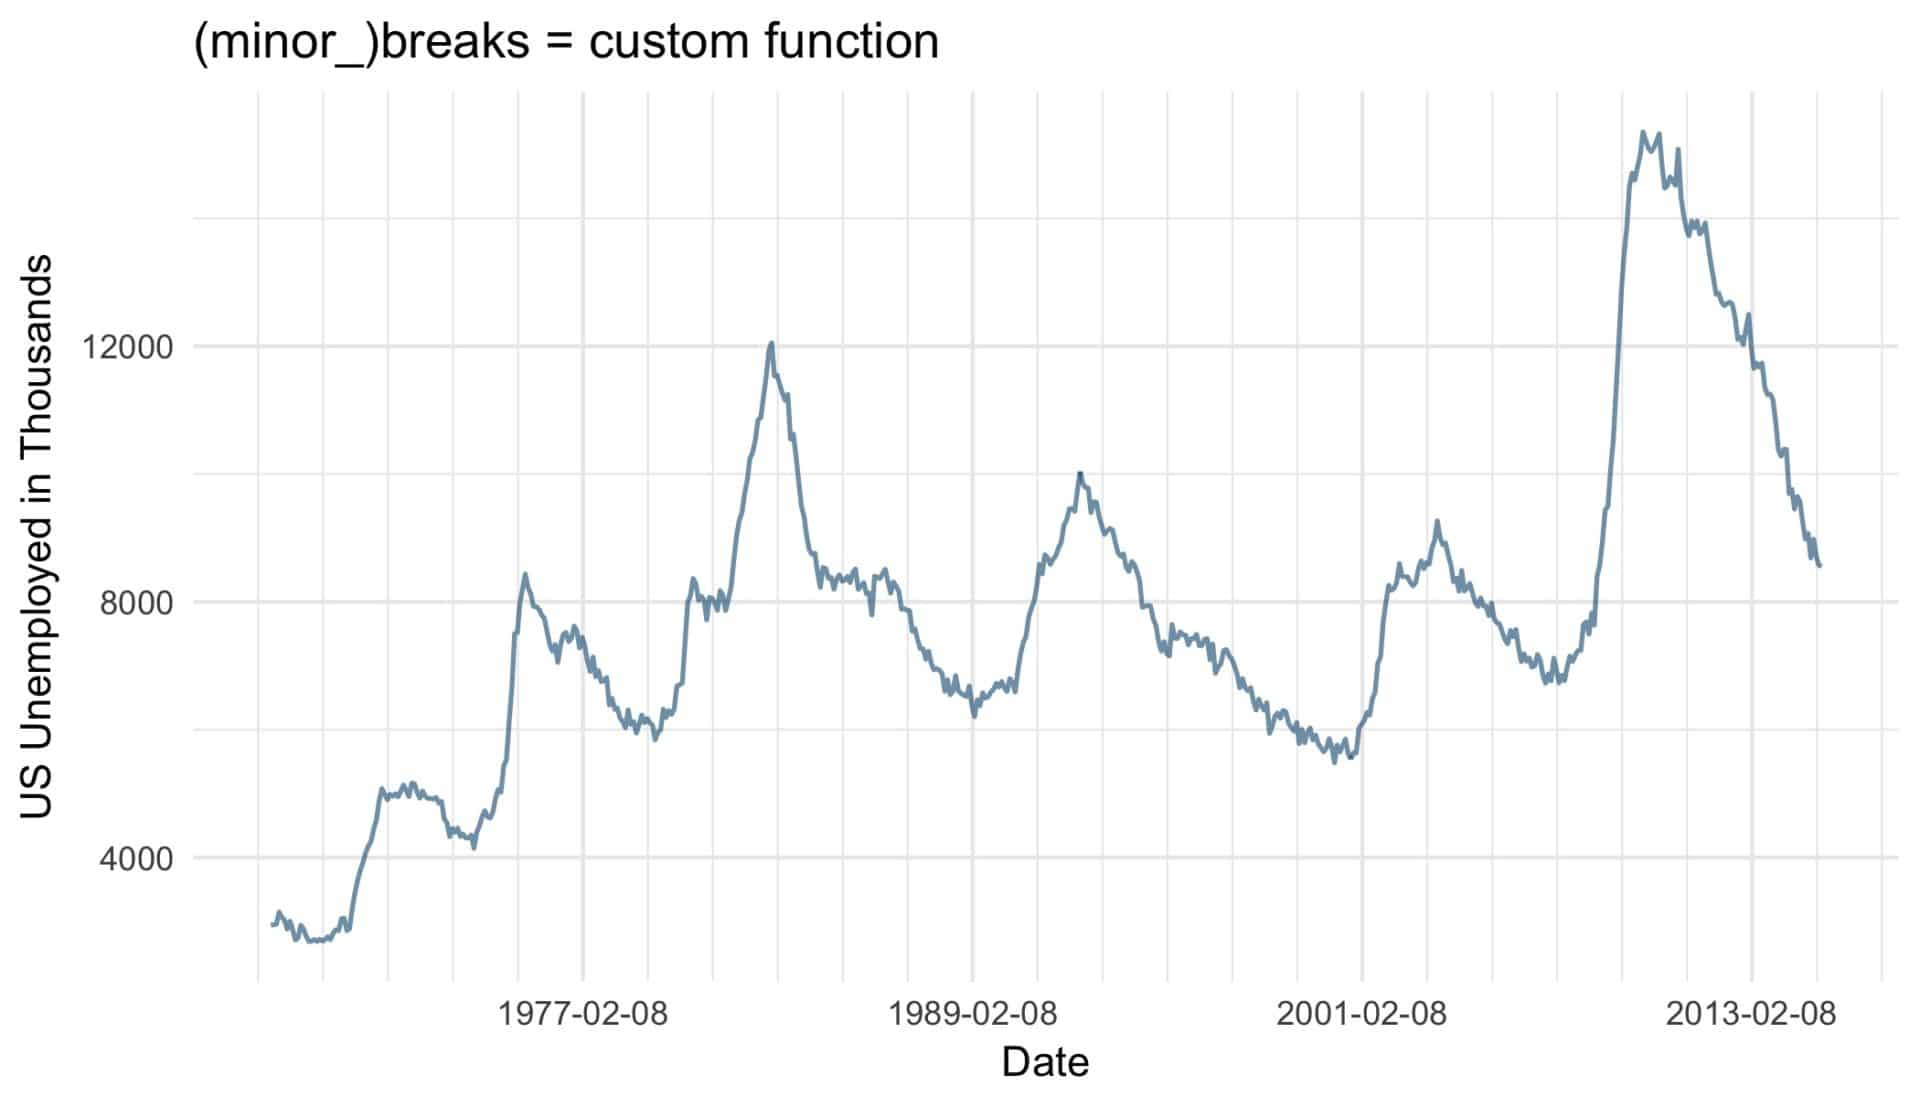 ggplot-breaks-custom-function